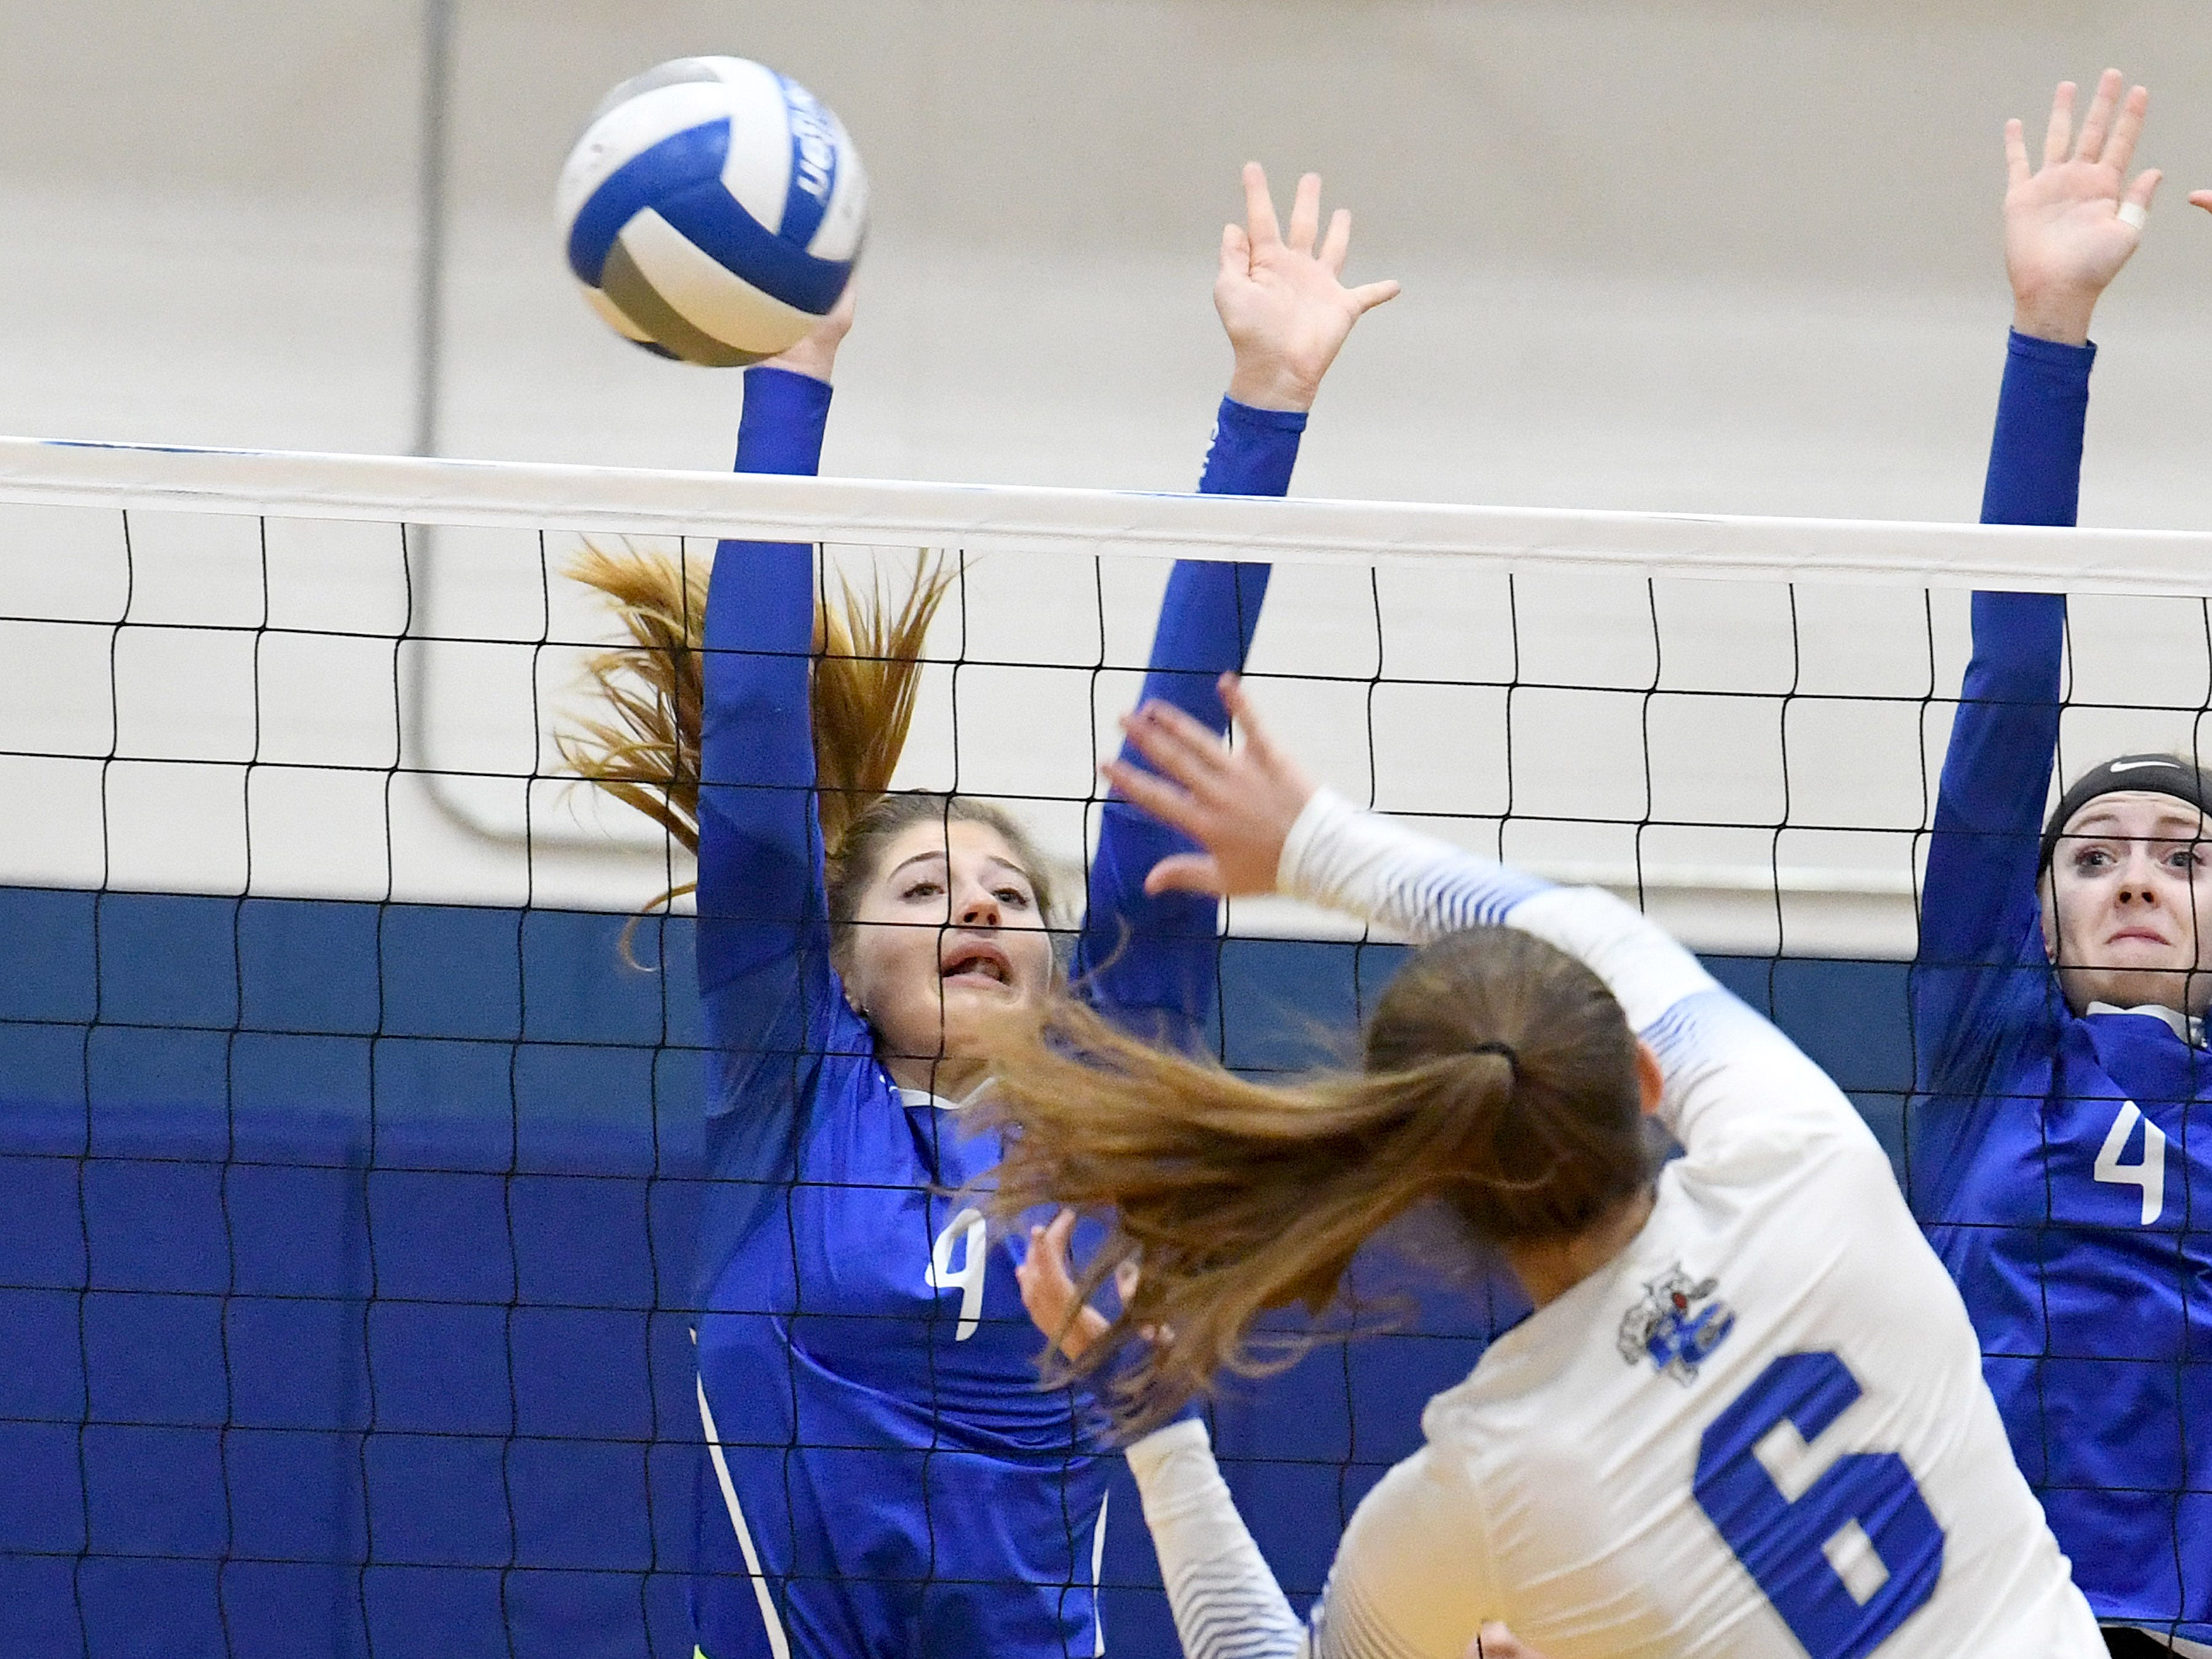 Fort Defiance's Leilani Goggin tries to block a spike by Rockbridge County's Jaydyn Clemmer during a Region 3C semifinal match played in Lexington on Monday, Nov. 5, 2018.